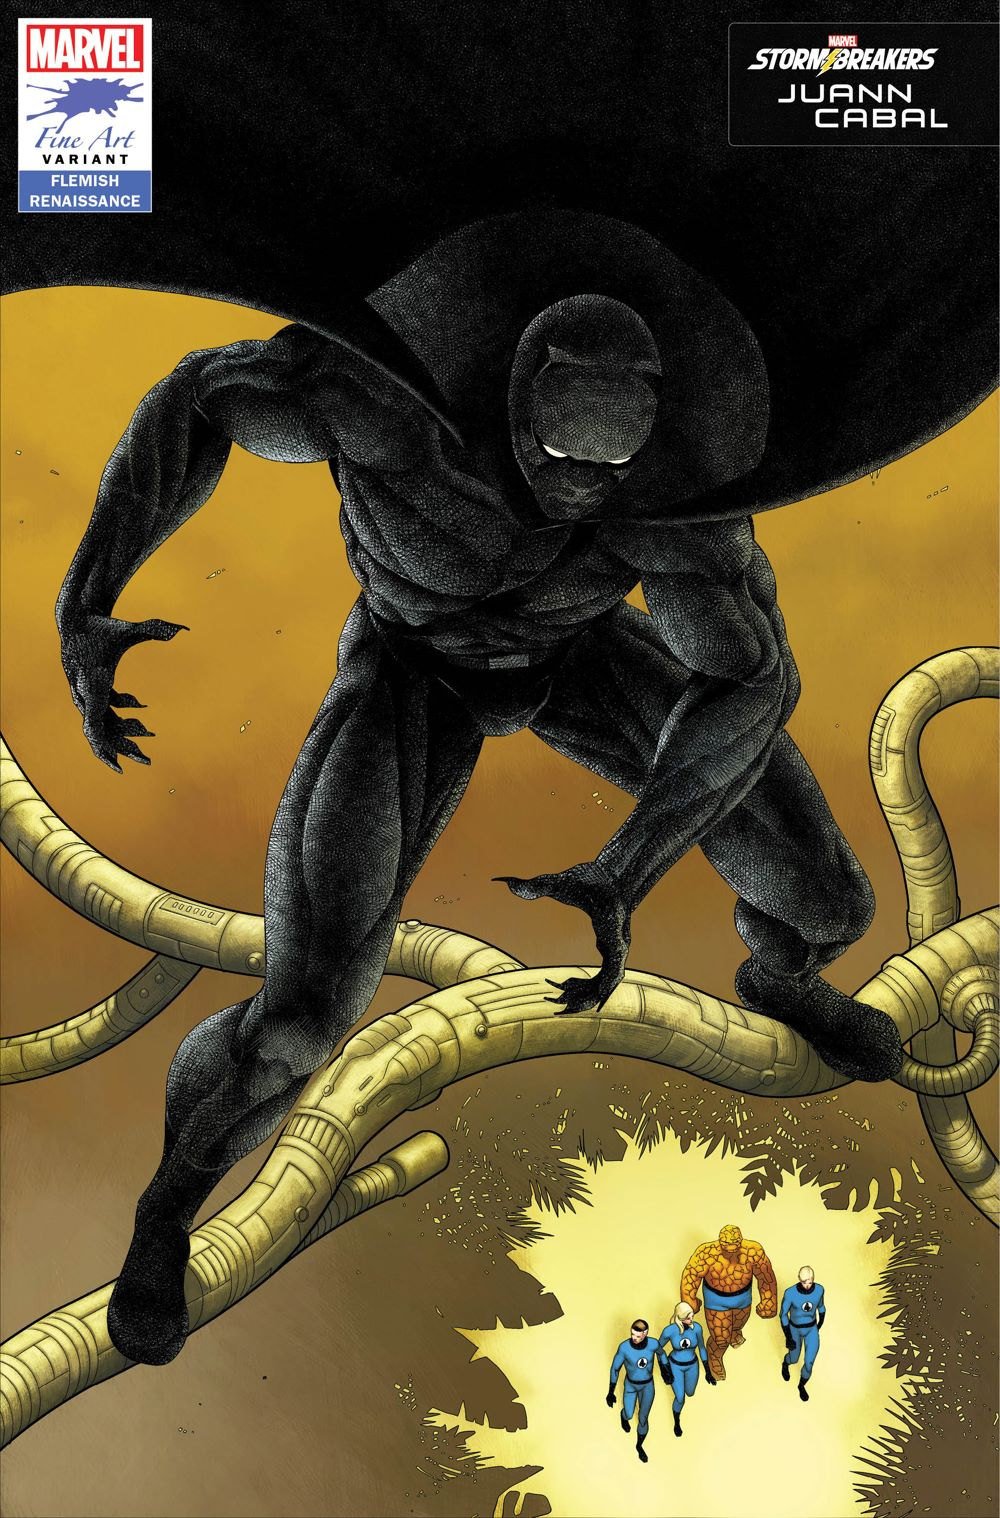 BLAP25_FINEART_CABAL ComicList: Marvel Comics New Releases for 05/26/2021